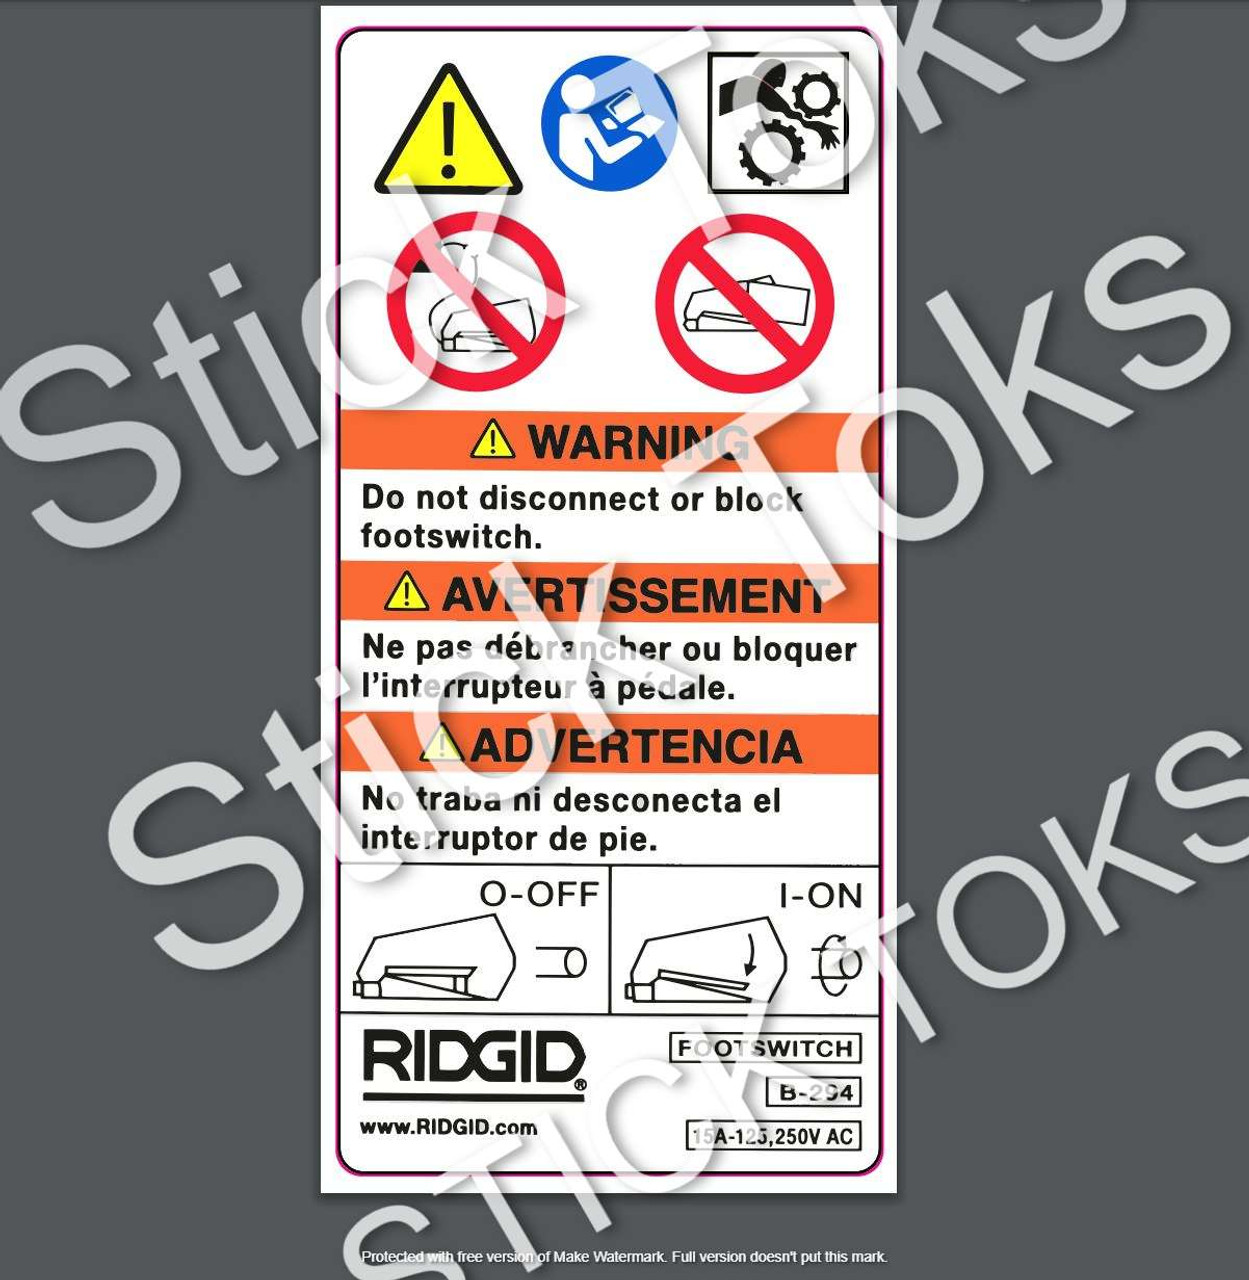 Ridgid 300 535 1224 1822 Foot Pedal safety and instruction decal